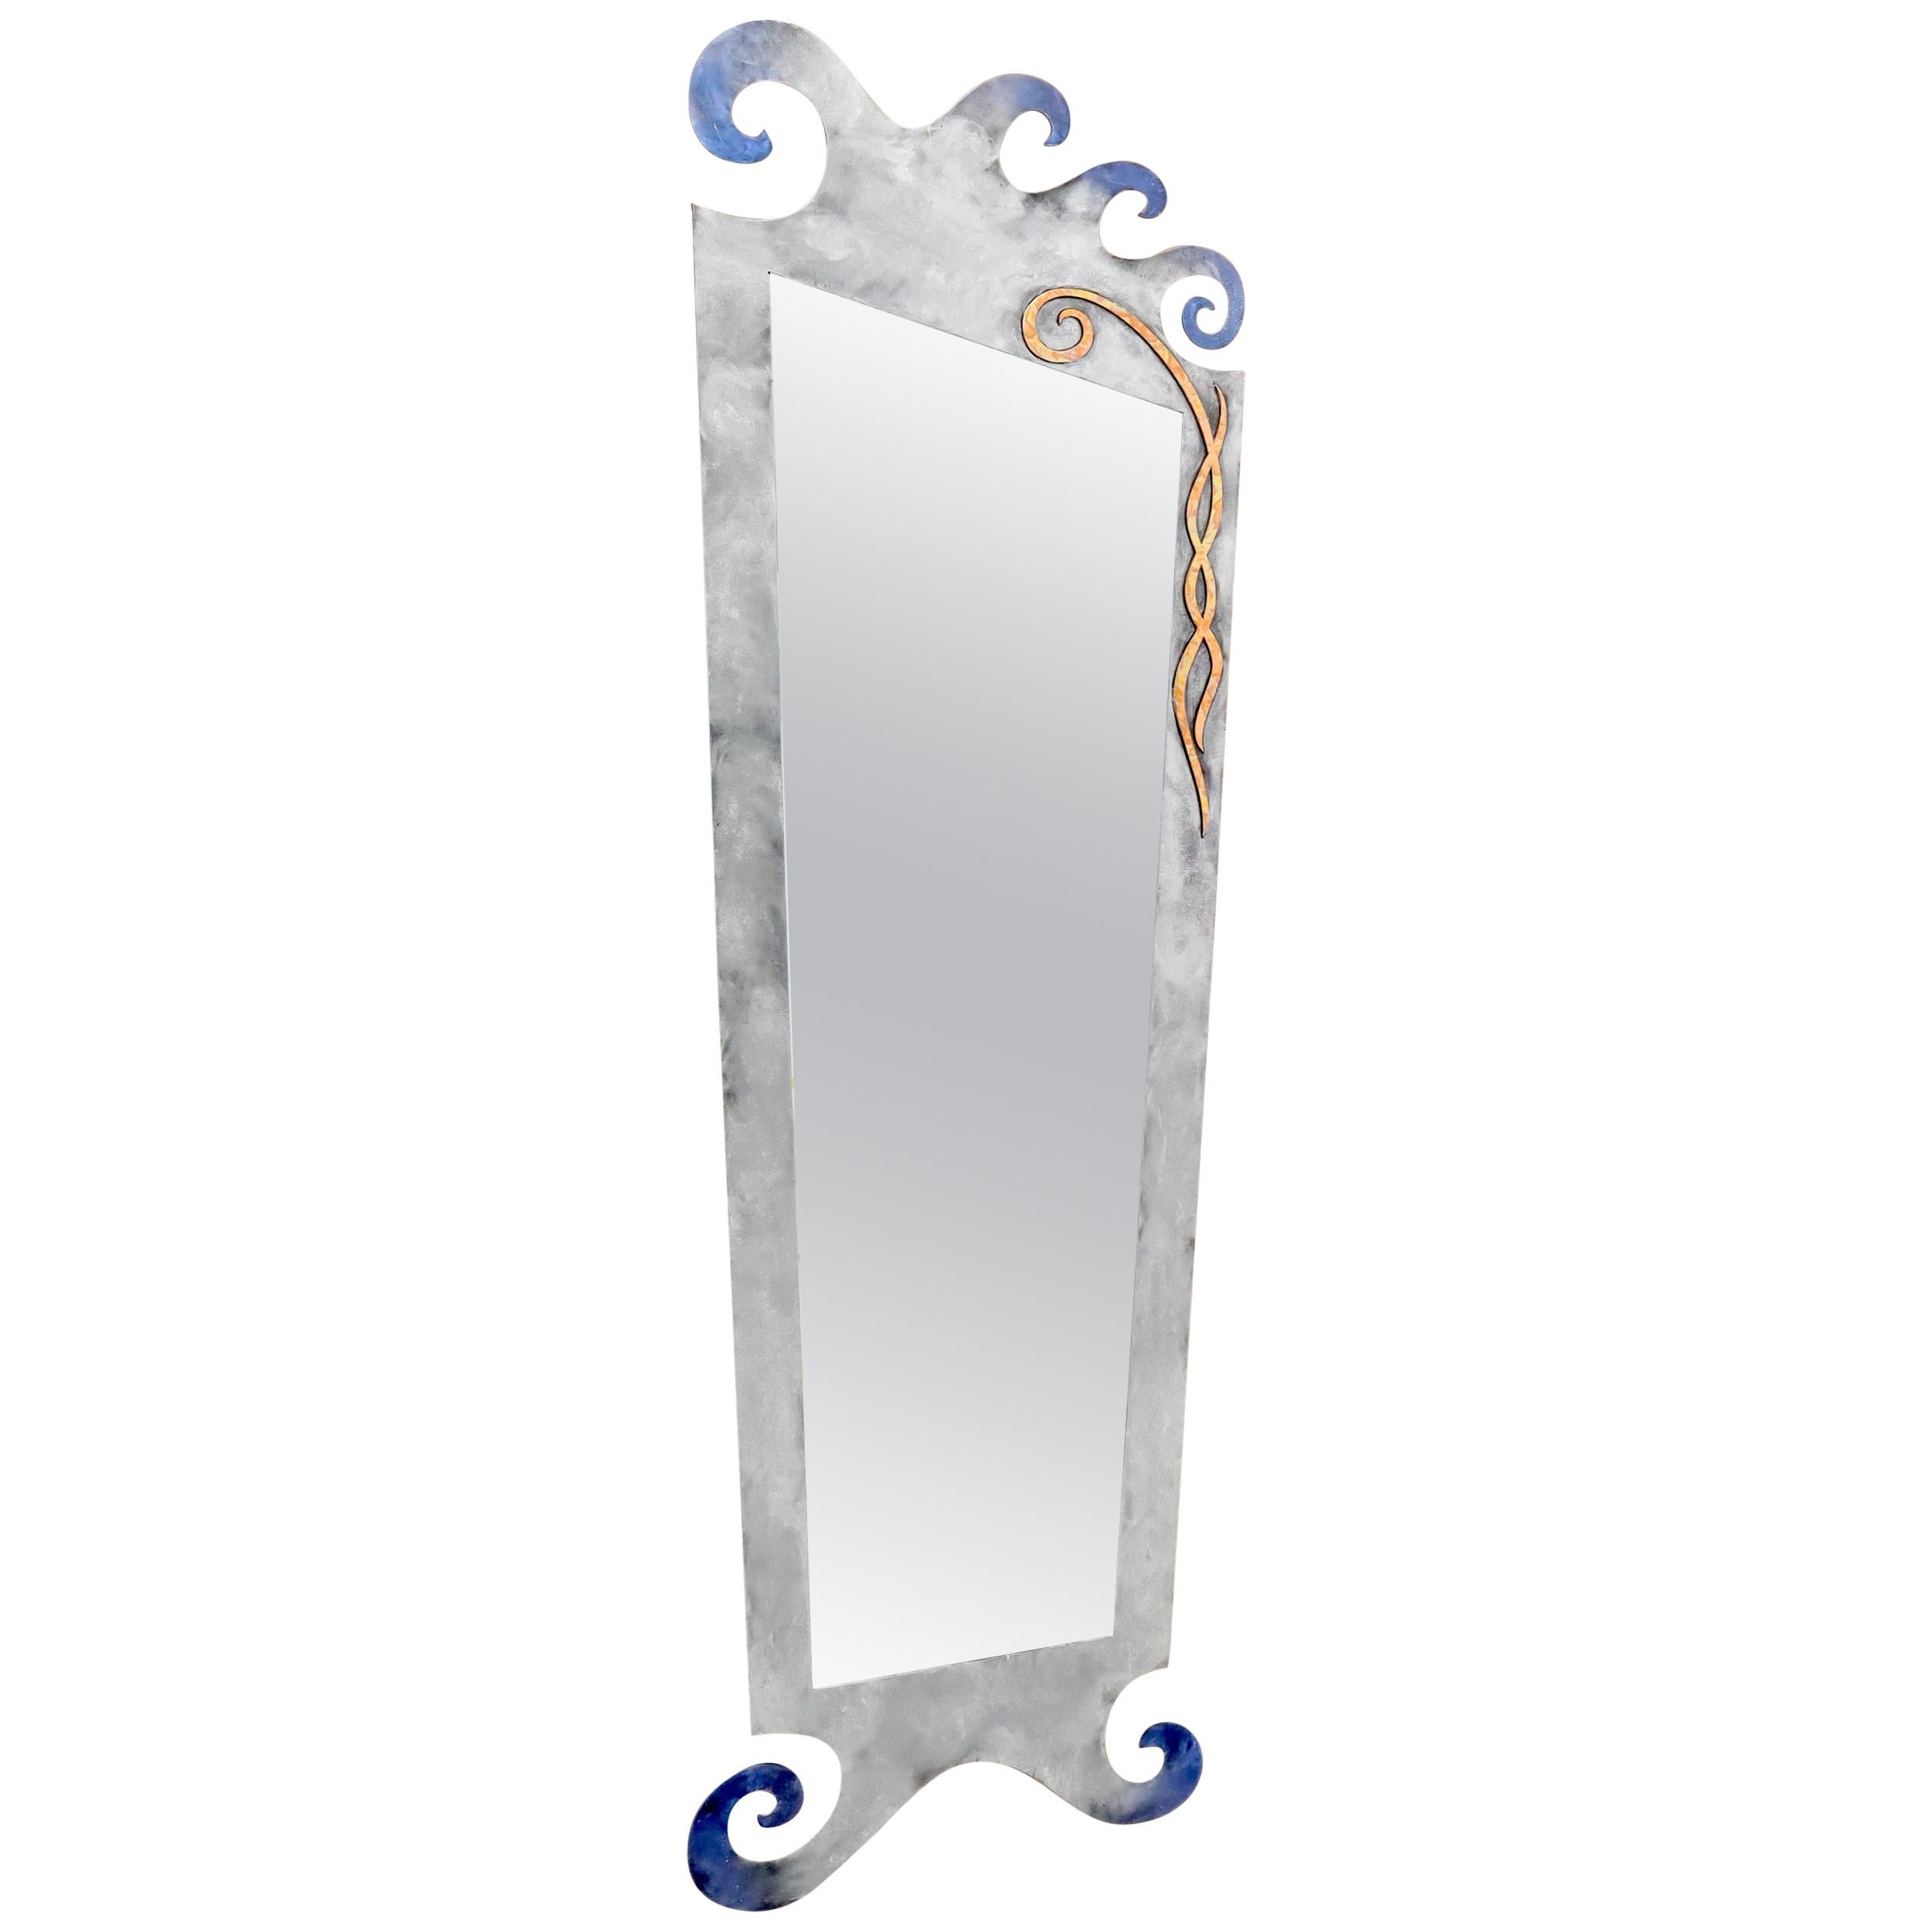 Large Decorative Metal Frame Floor Standing Wall Mirror